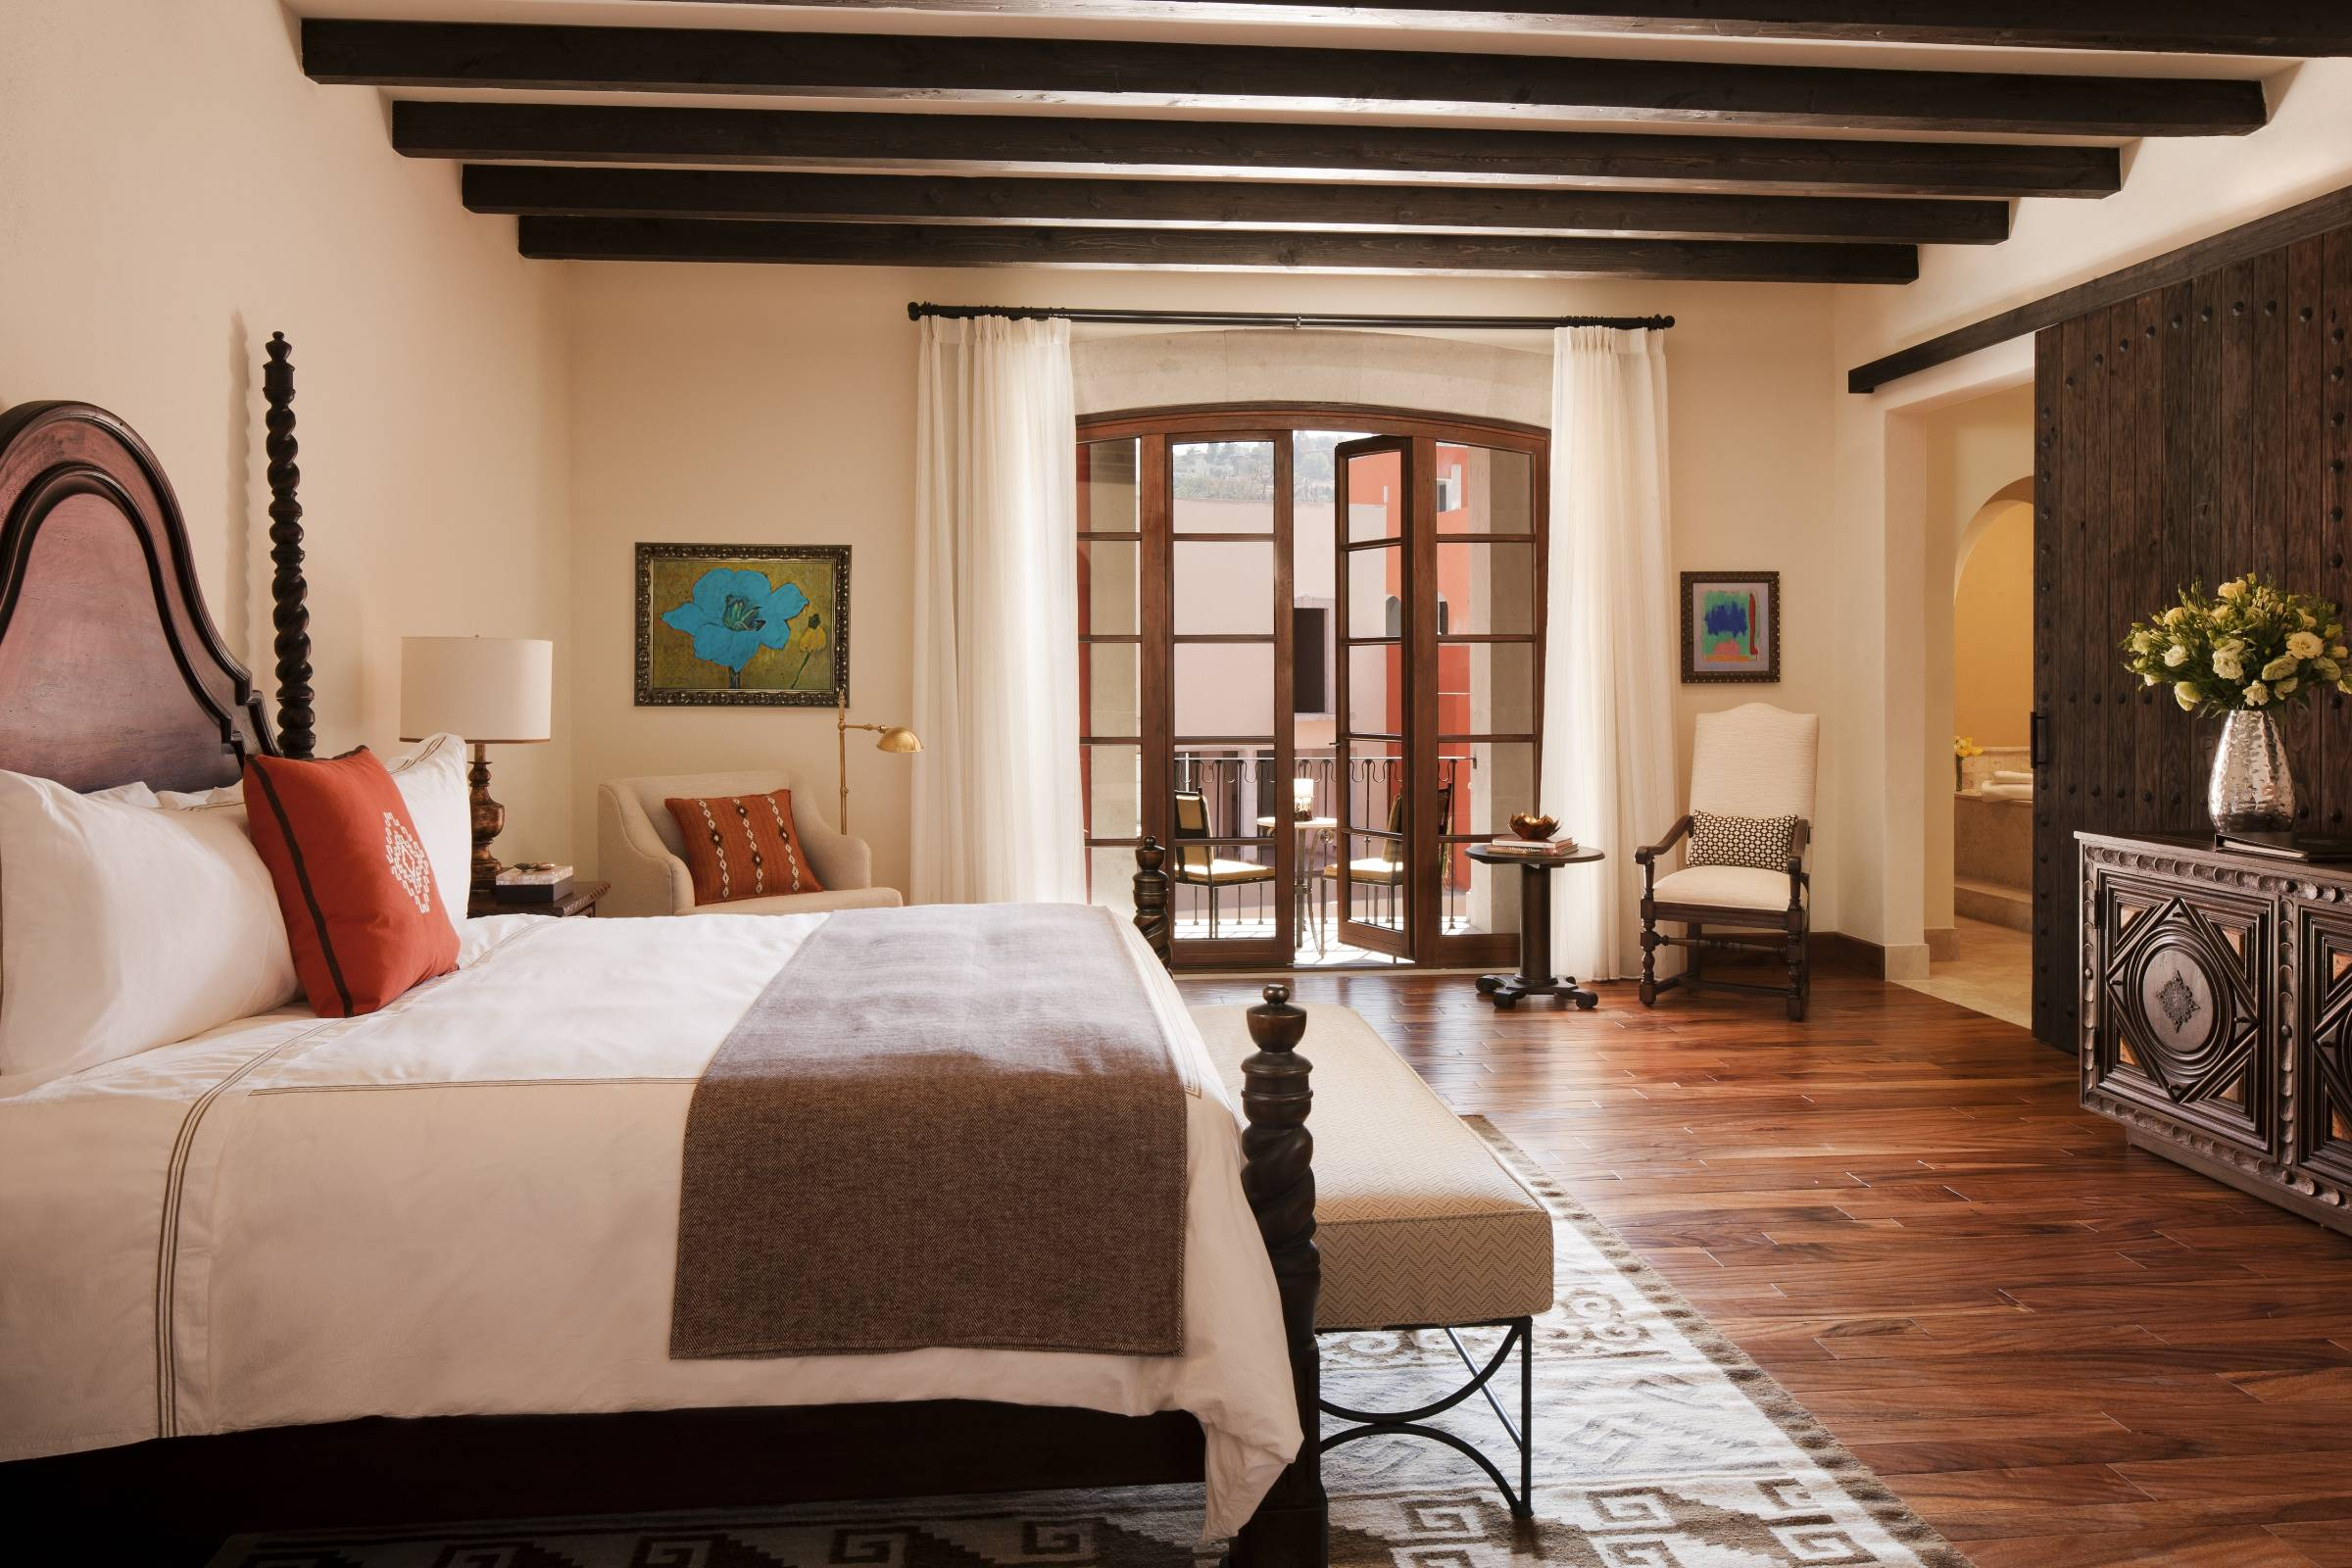 Hotel Rosewood San Miguel De Allende Mexico At Hrs With Free Services